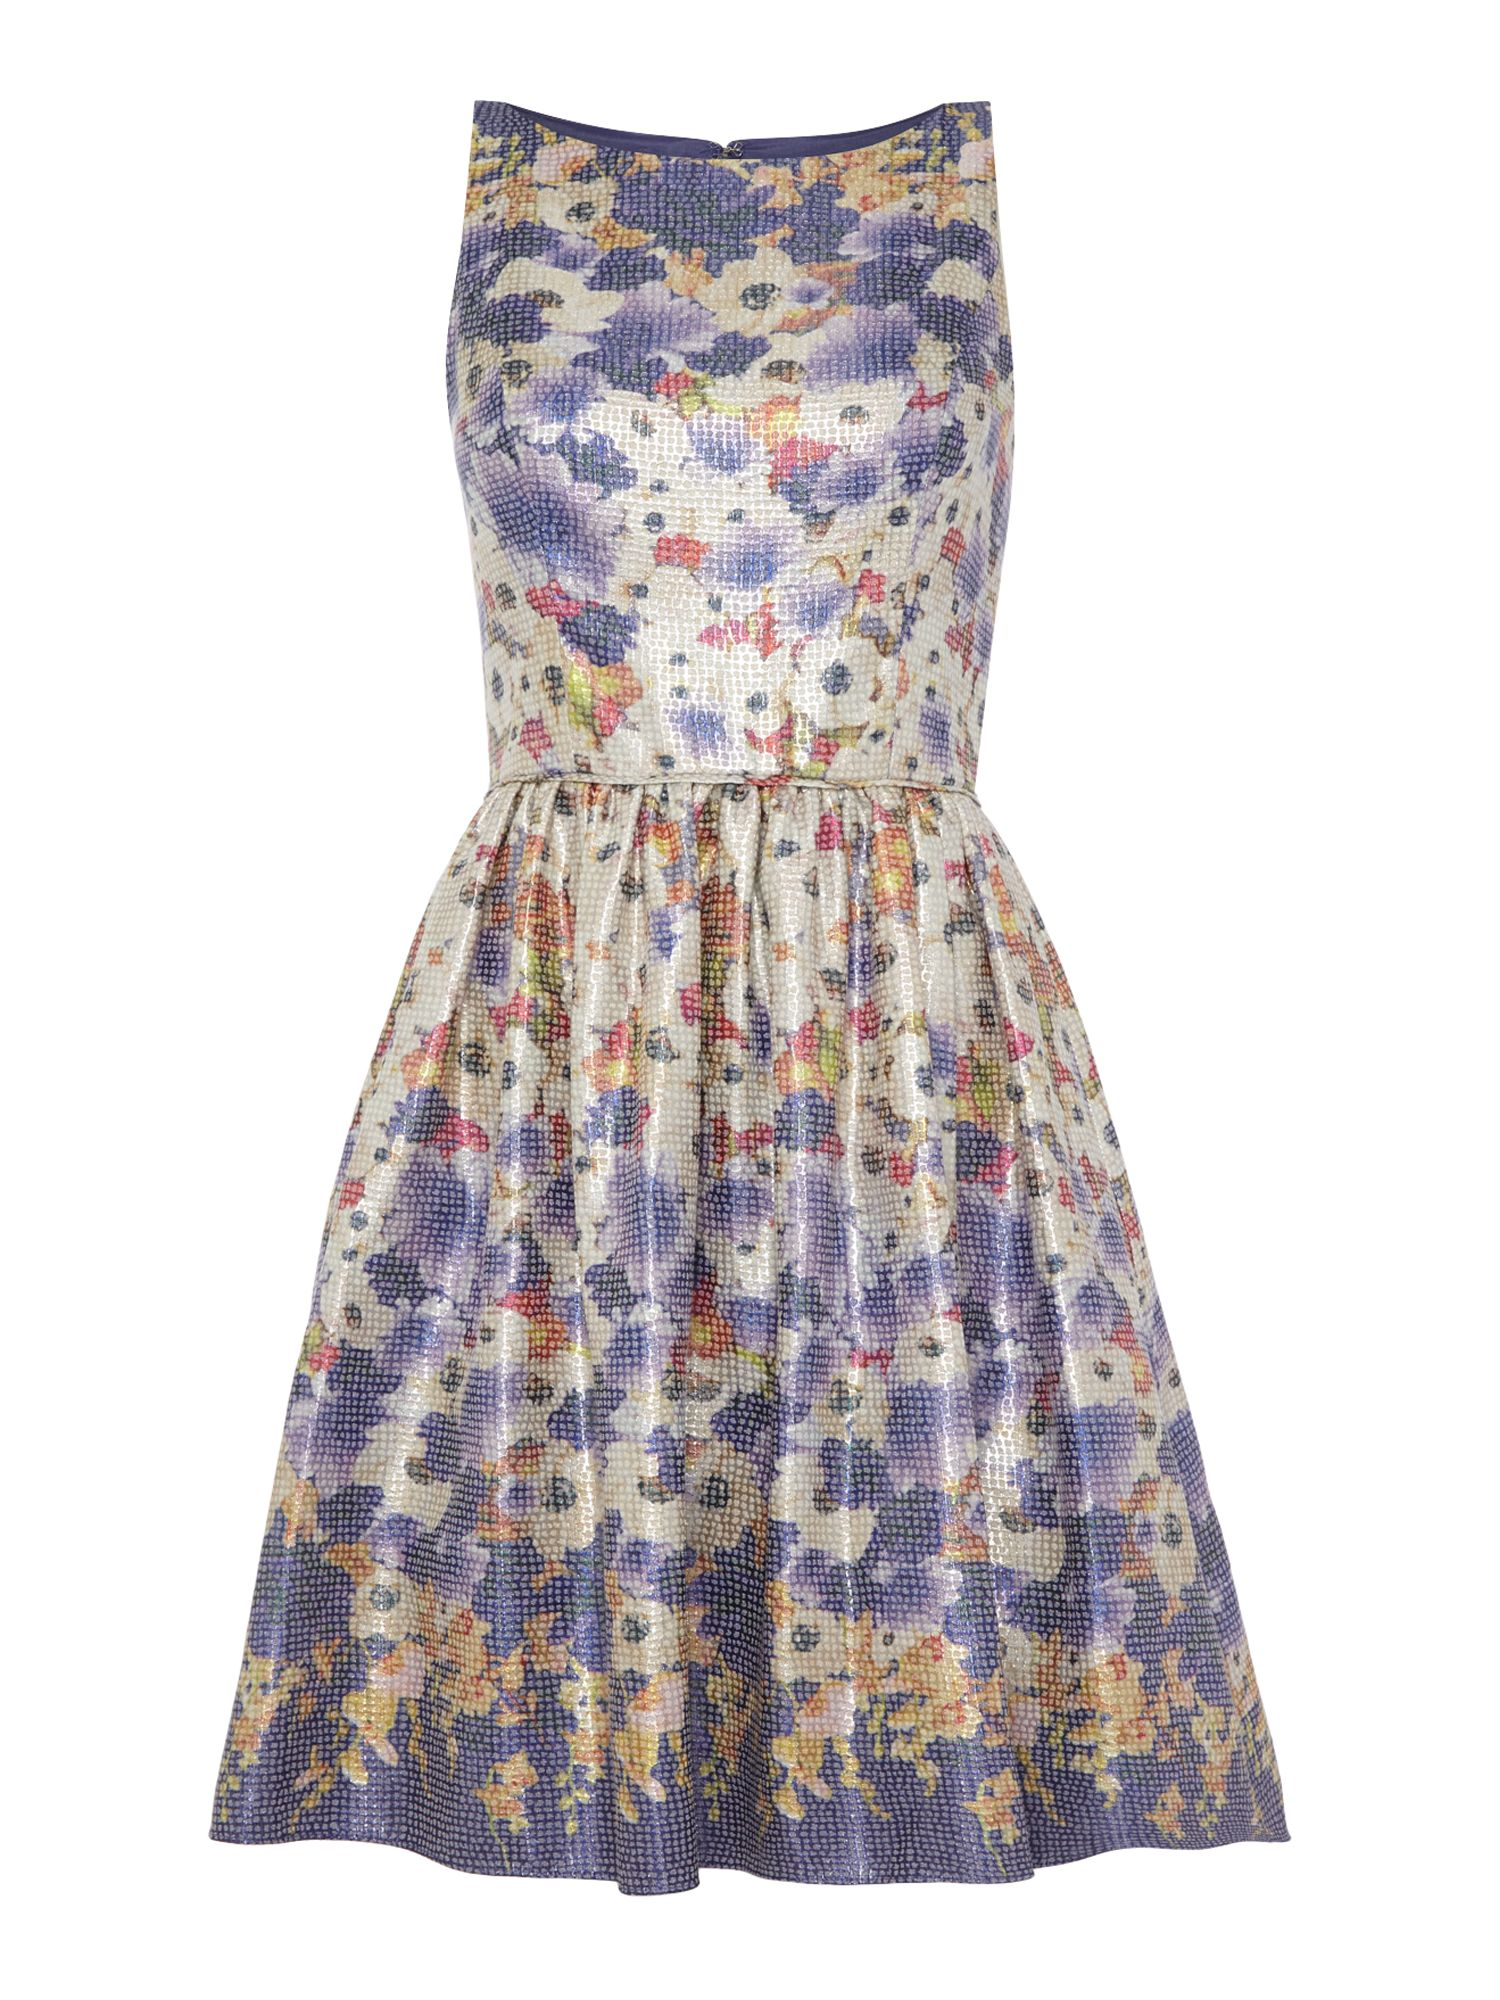 Adrianna Papell Metallic floral jacquard printed dress $170.00 AT vintagedancer.com